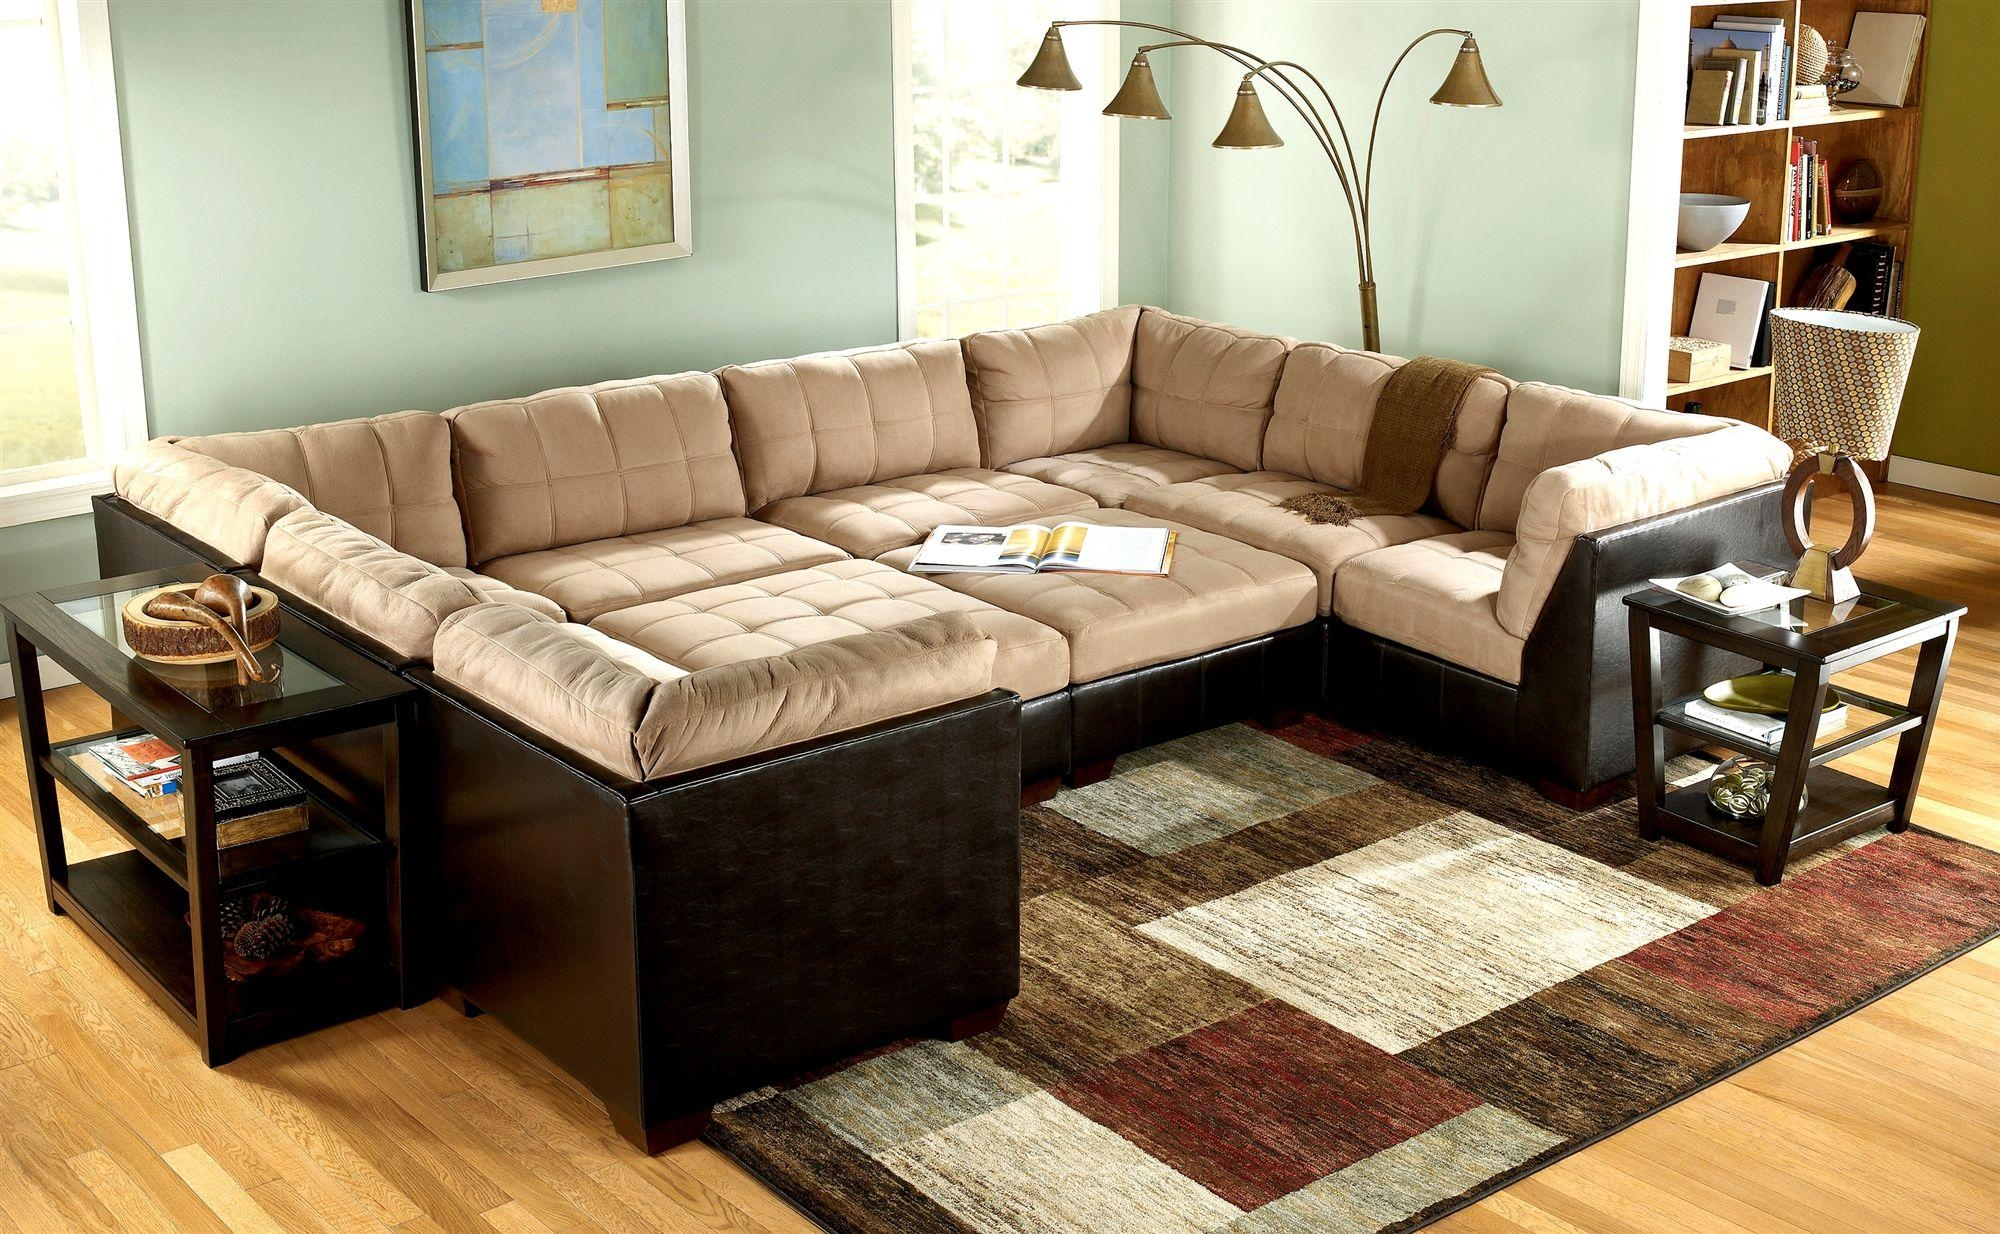 Sofa: Cool Couches For Provides A Warm To Comfortable Feel And Low Inside Sectional With Oversized Ottoman (View 8 of 20)